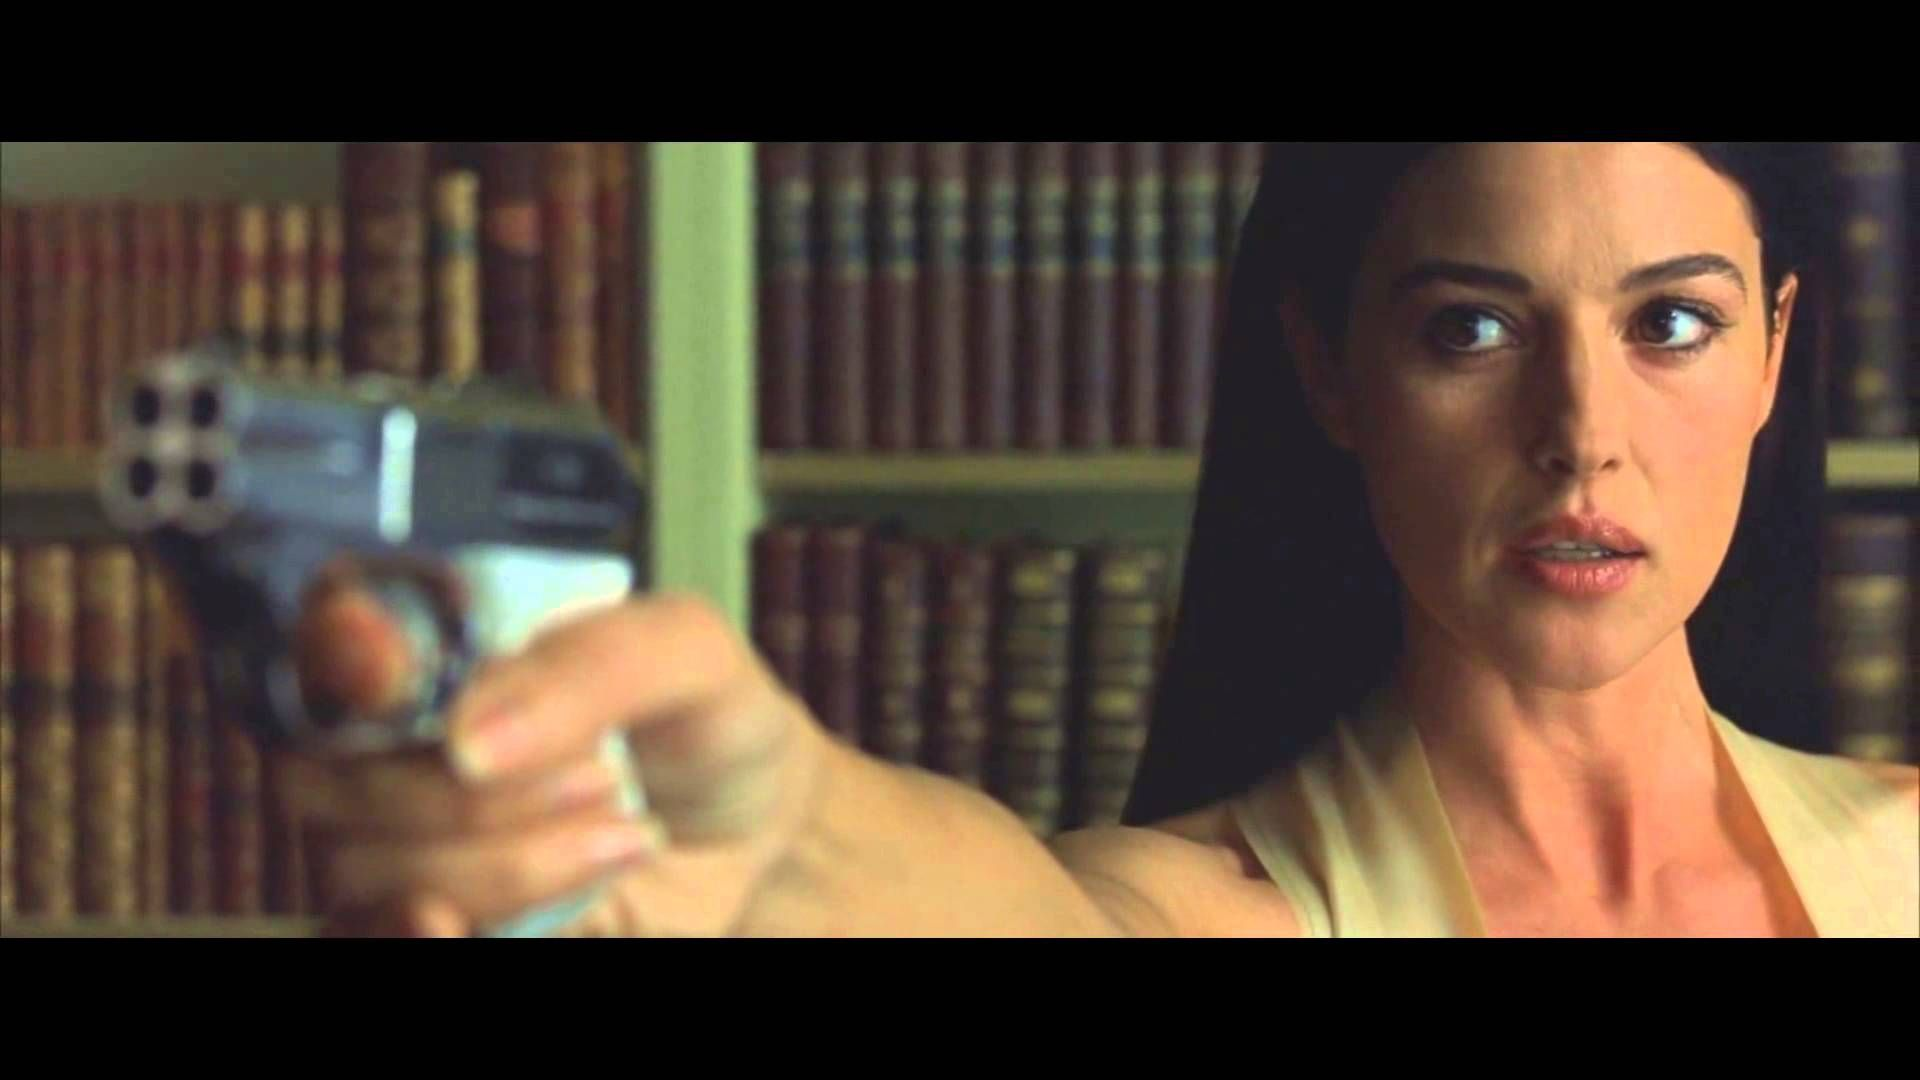 The Best Of The Merovingian And Persephone (1080p HD